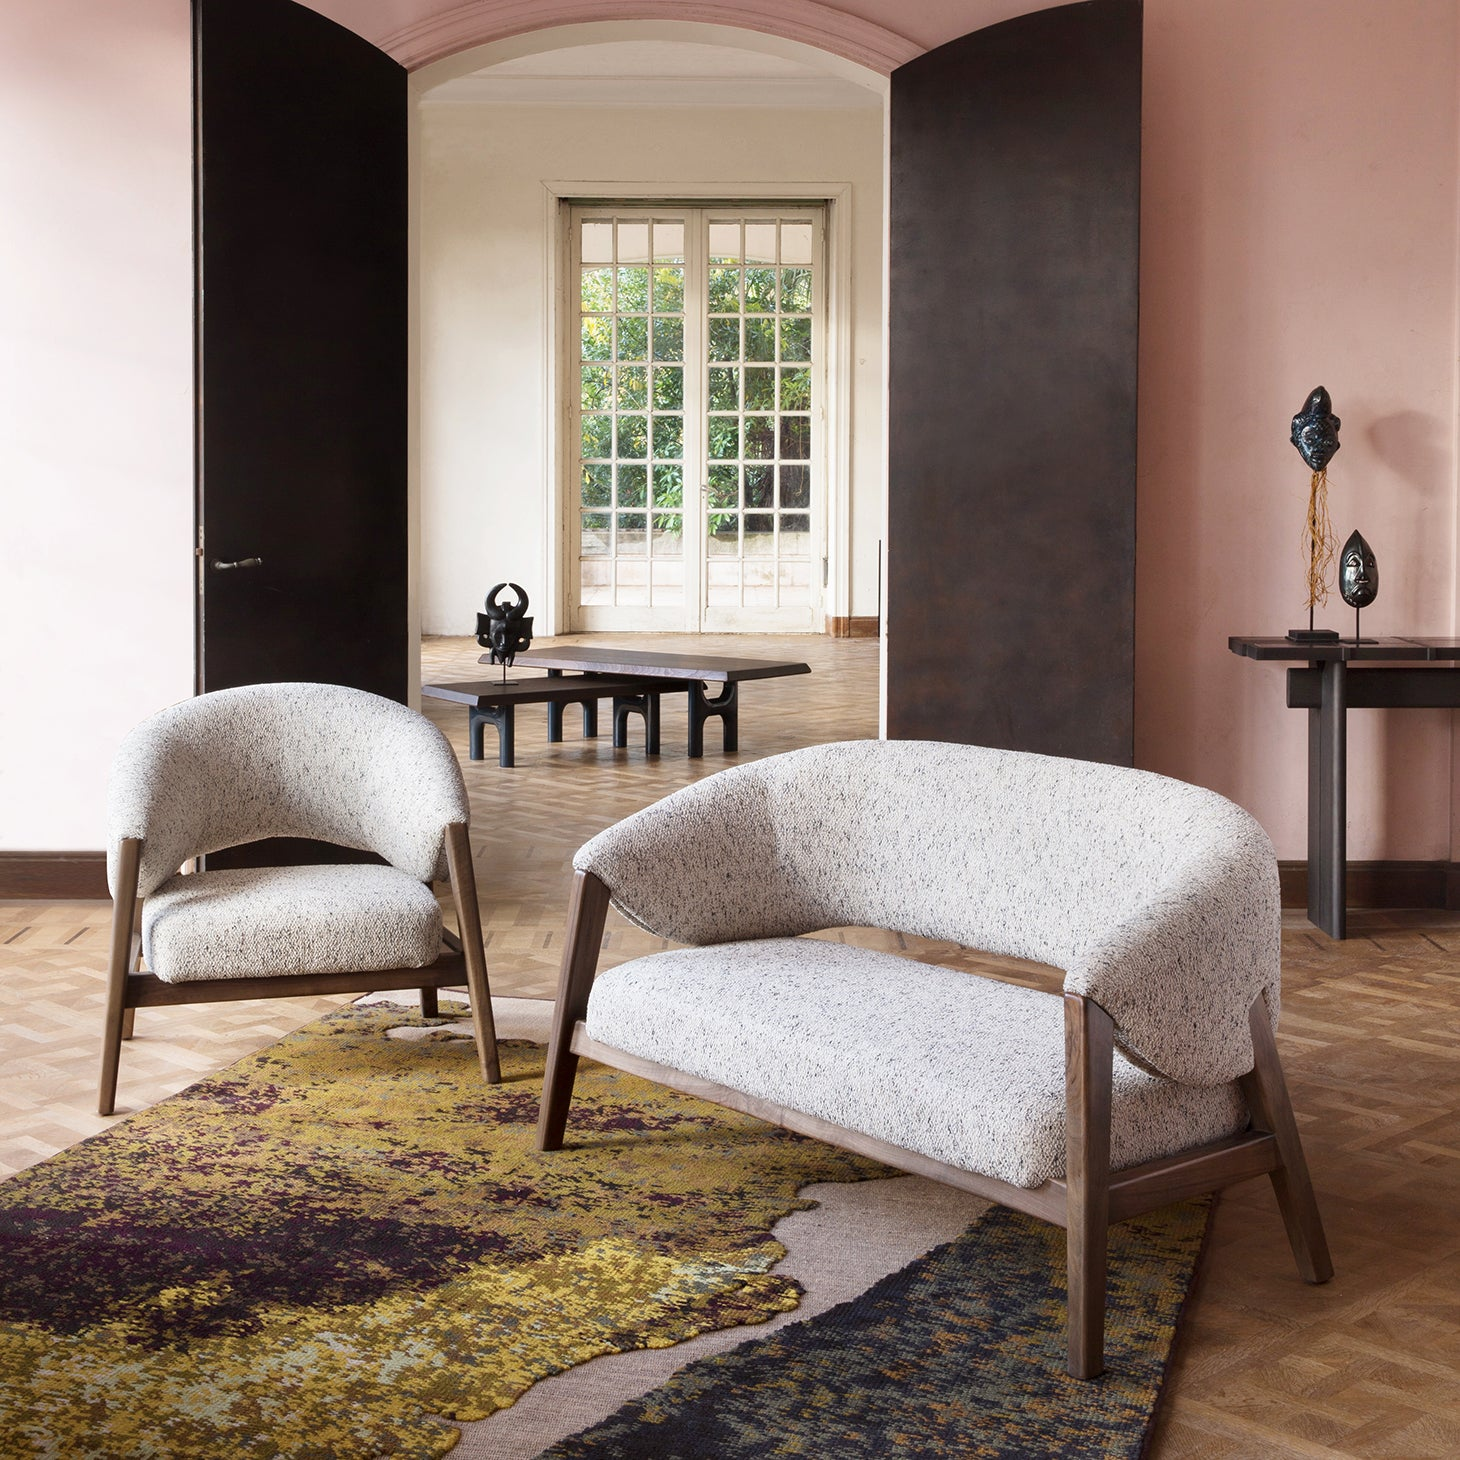 APORA Seating Bruno Moinard Designer Furniture Sku: 773-240-10033